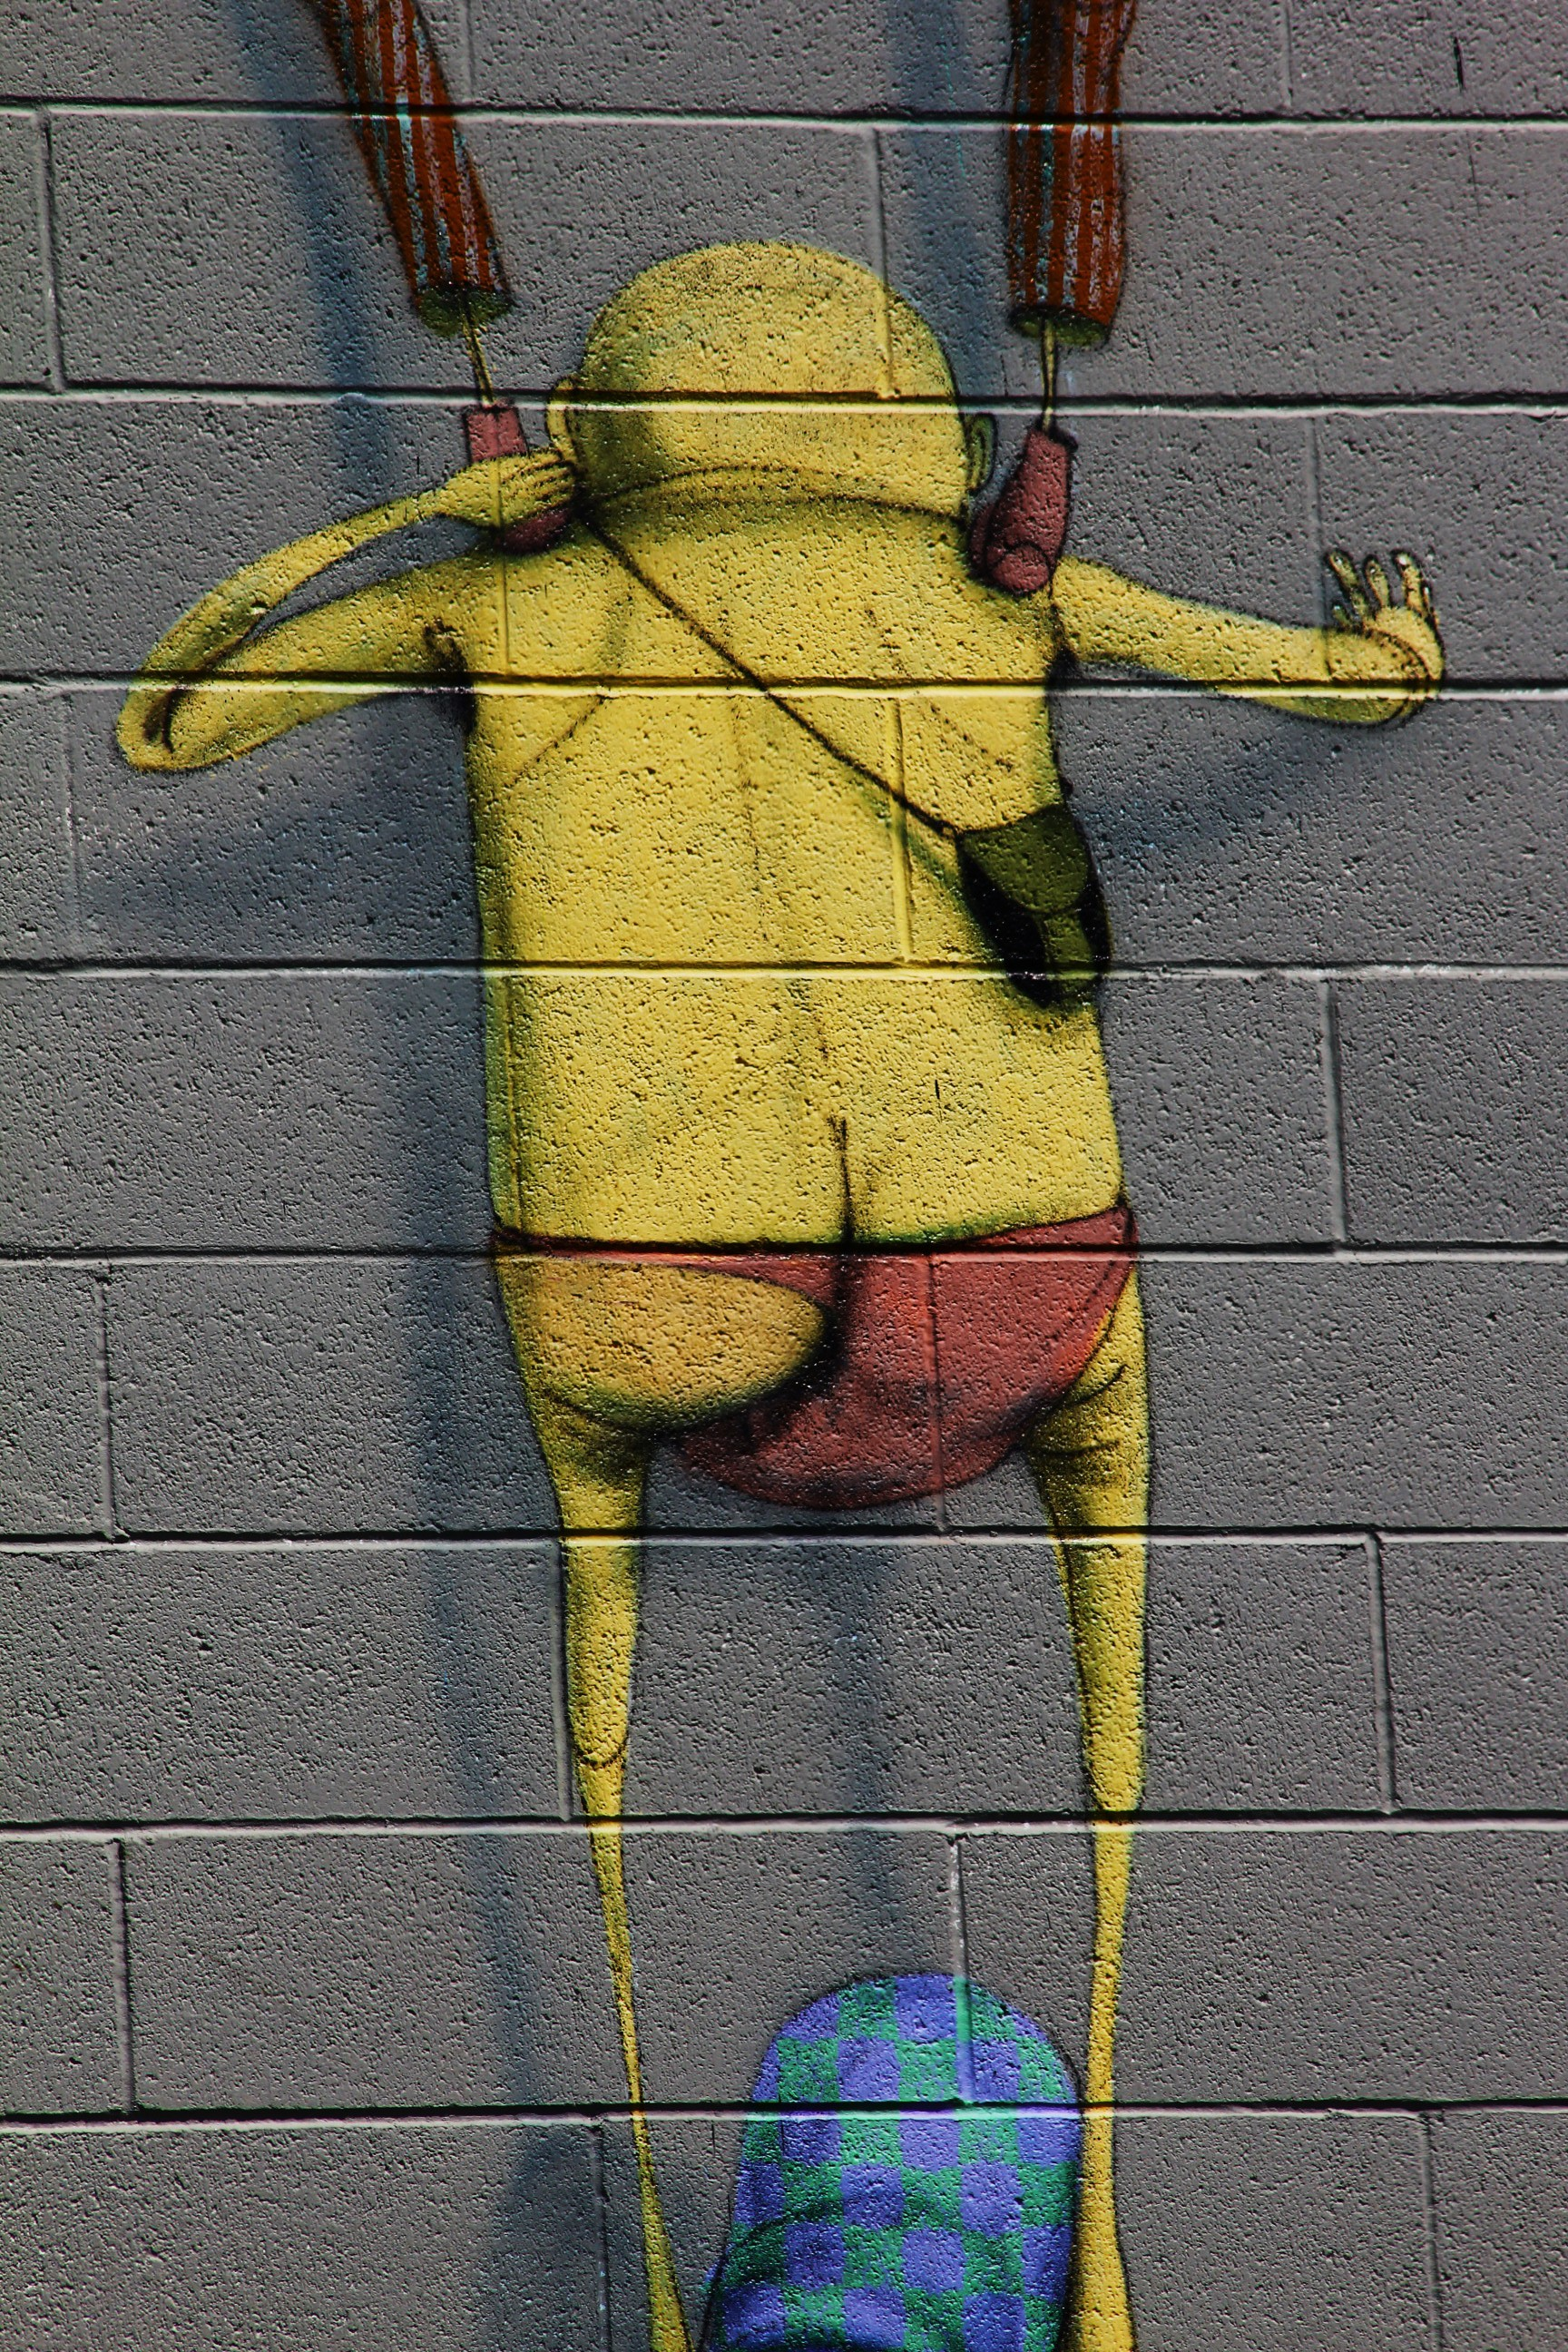 SAN DIEGO STREET ART: DON\'T BELIEVE THE HYPE by OS GEMEOS ...